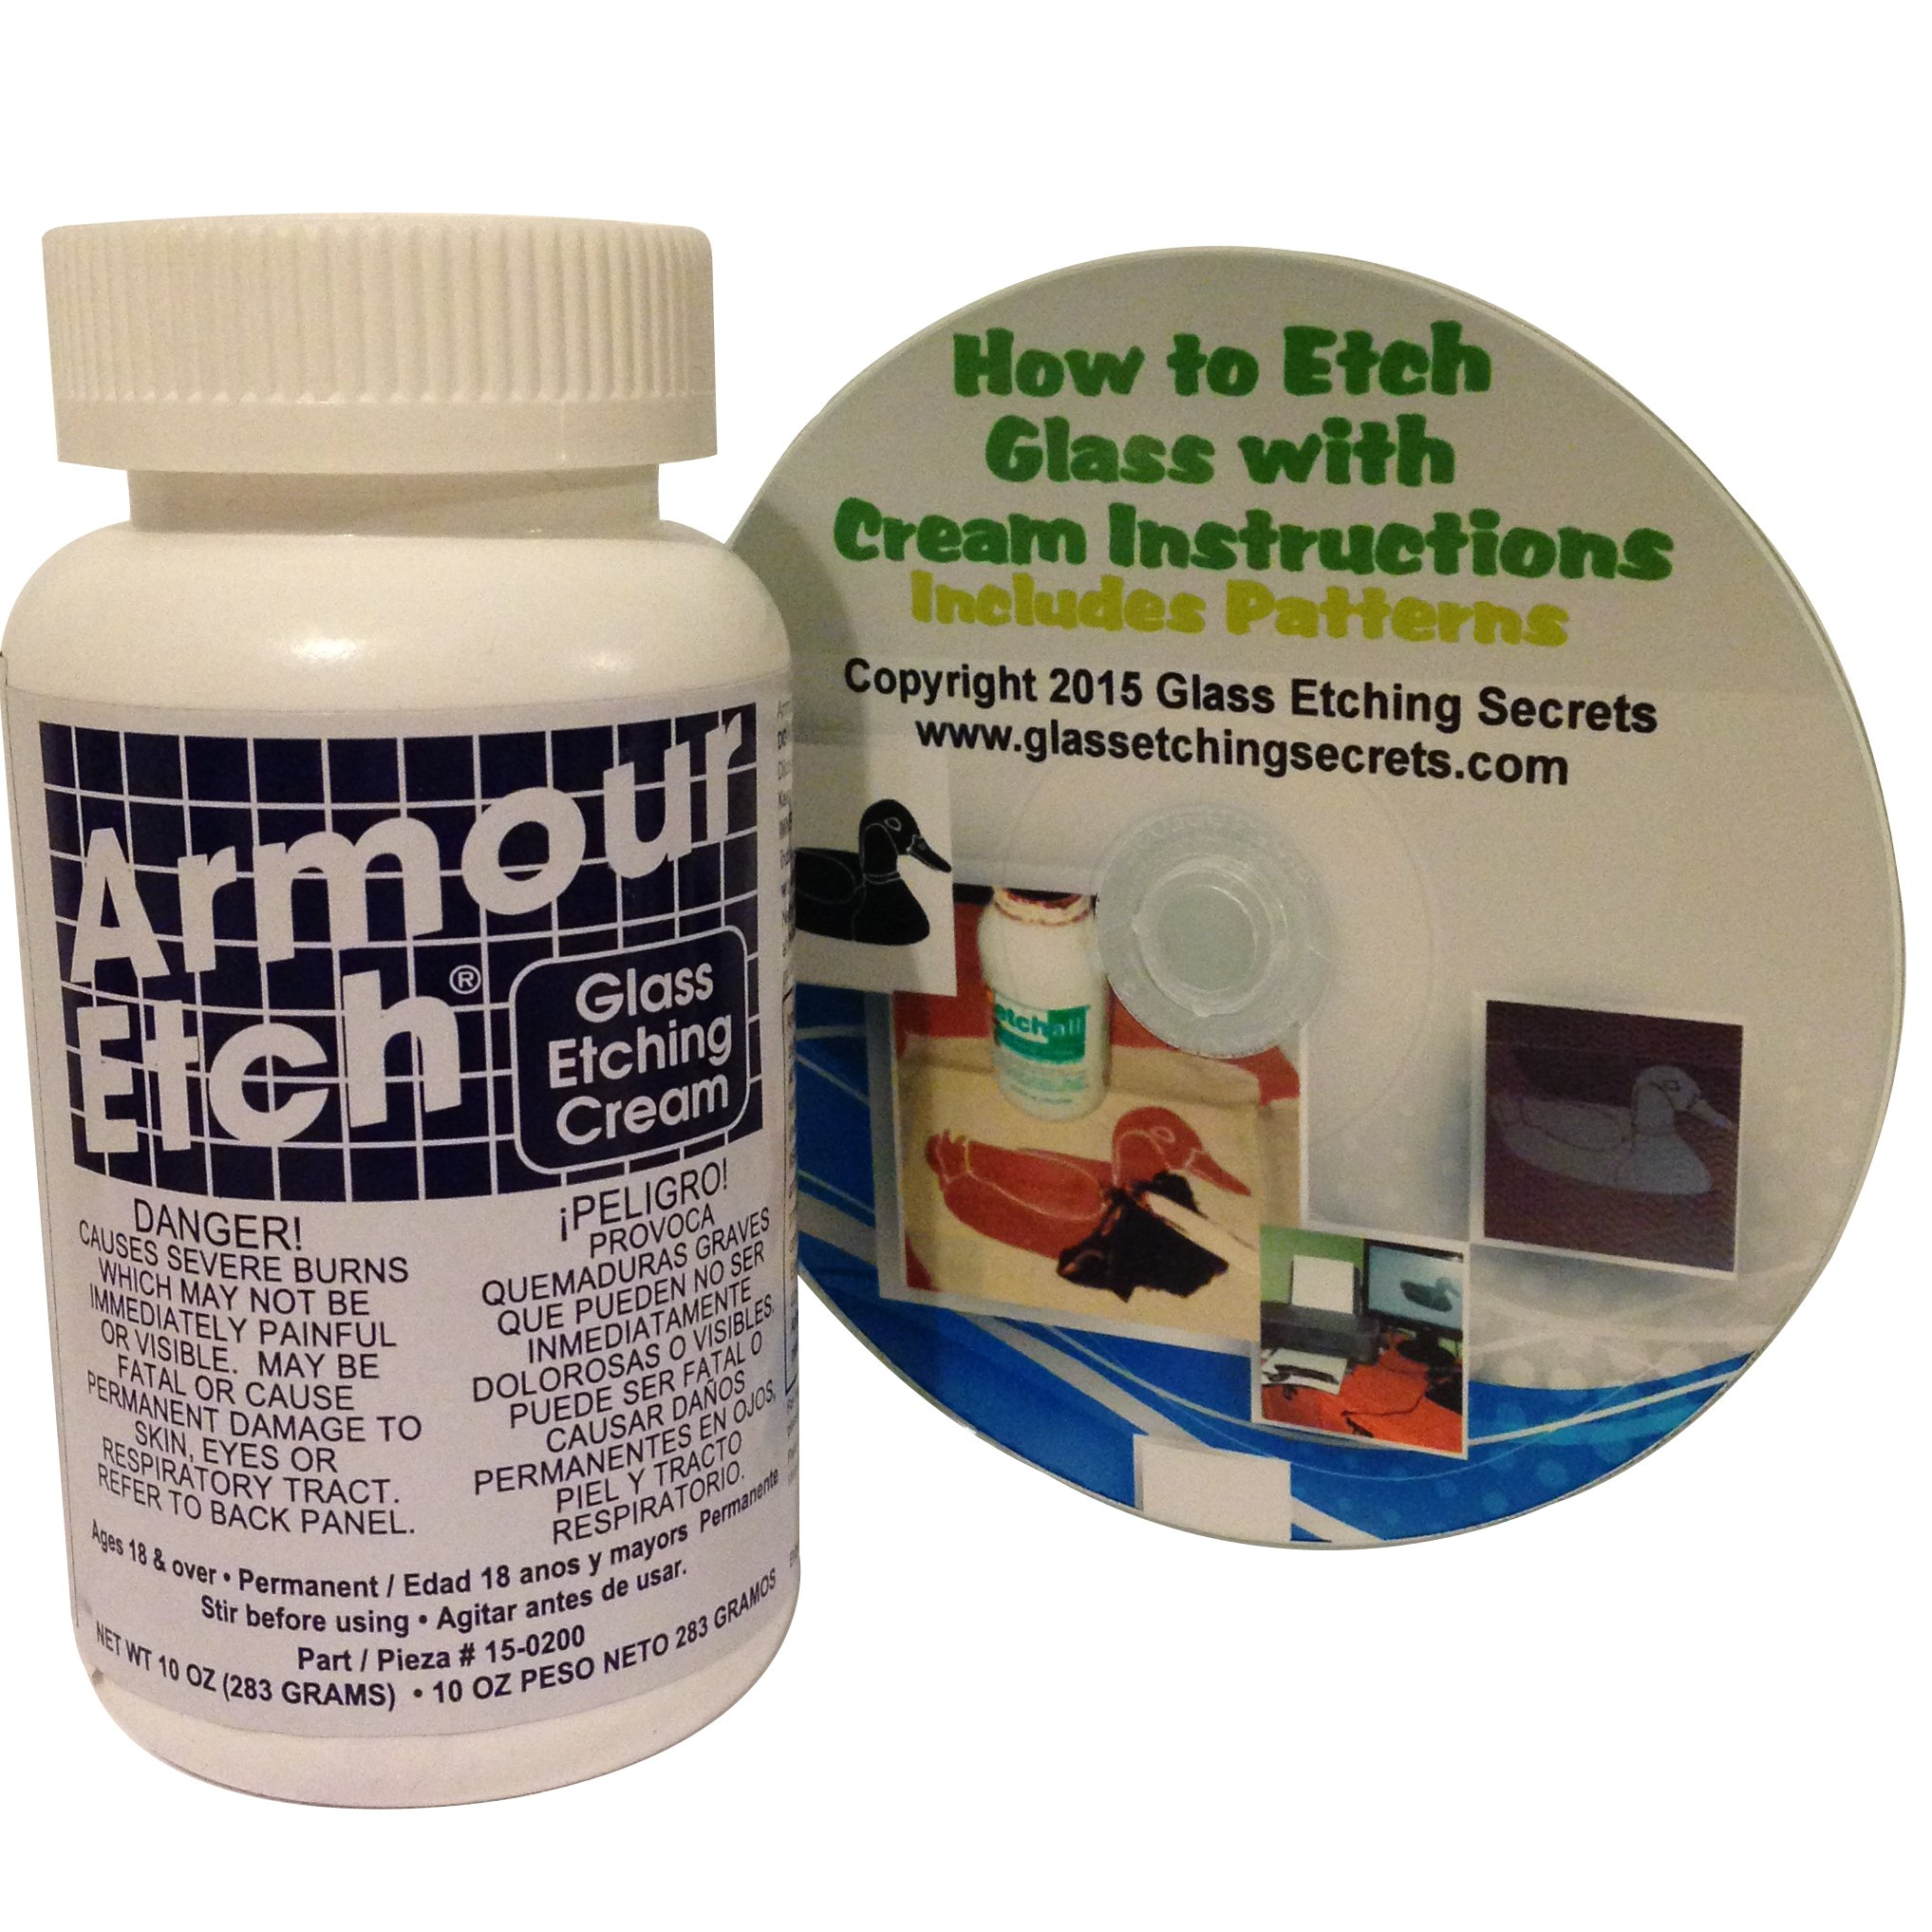 Glass Etching Cream, 10-Ounce by Armour Etch: Includes How to CD & Free Patterns by Armour Etch